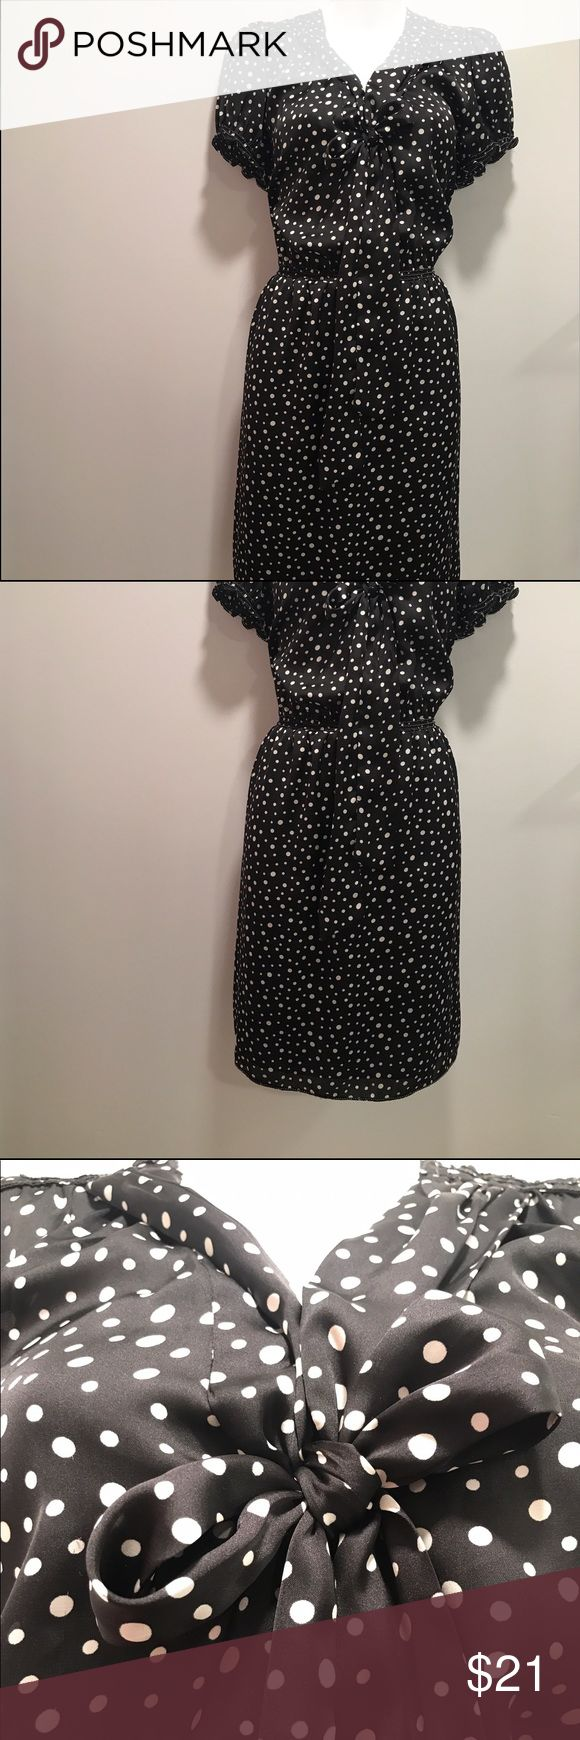 Vintage inspired black and white polka dot dress-L Slip into this flattering yet hug you in the right spots dress. Great for the office and for a night out afterward. It's short sleeve and has a beautiful front tie bow. It is comfortable and beautiful. Don't let this LBD get away! In pristine condition. No holes or stains. Ruffle and the waistline stretches! Max Studio Dresses